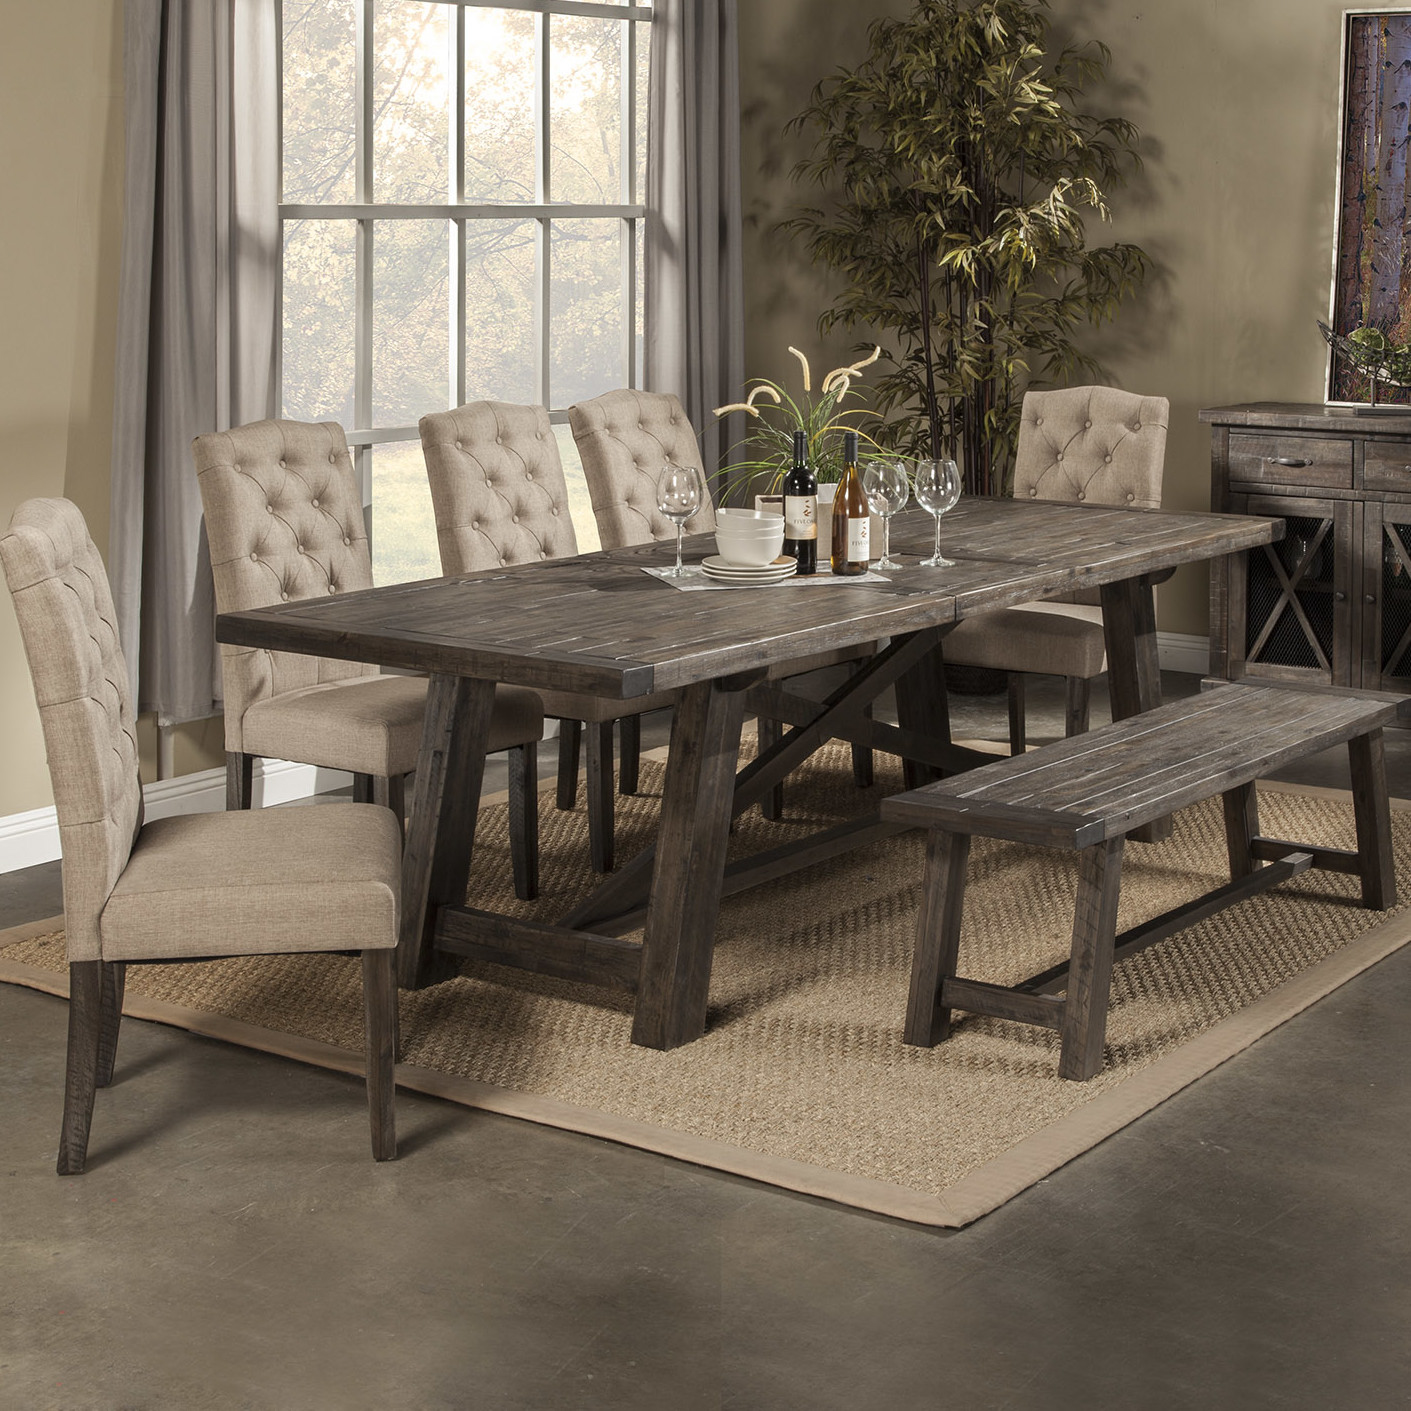 Rustic Dining Room Tables With Bench. Best Dining Set For Family